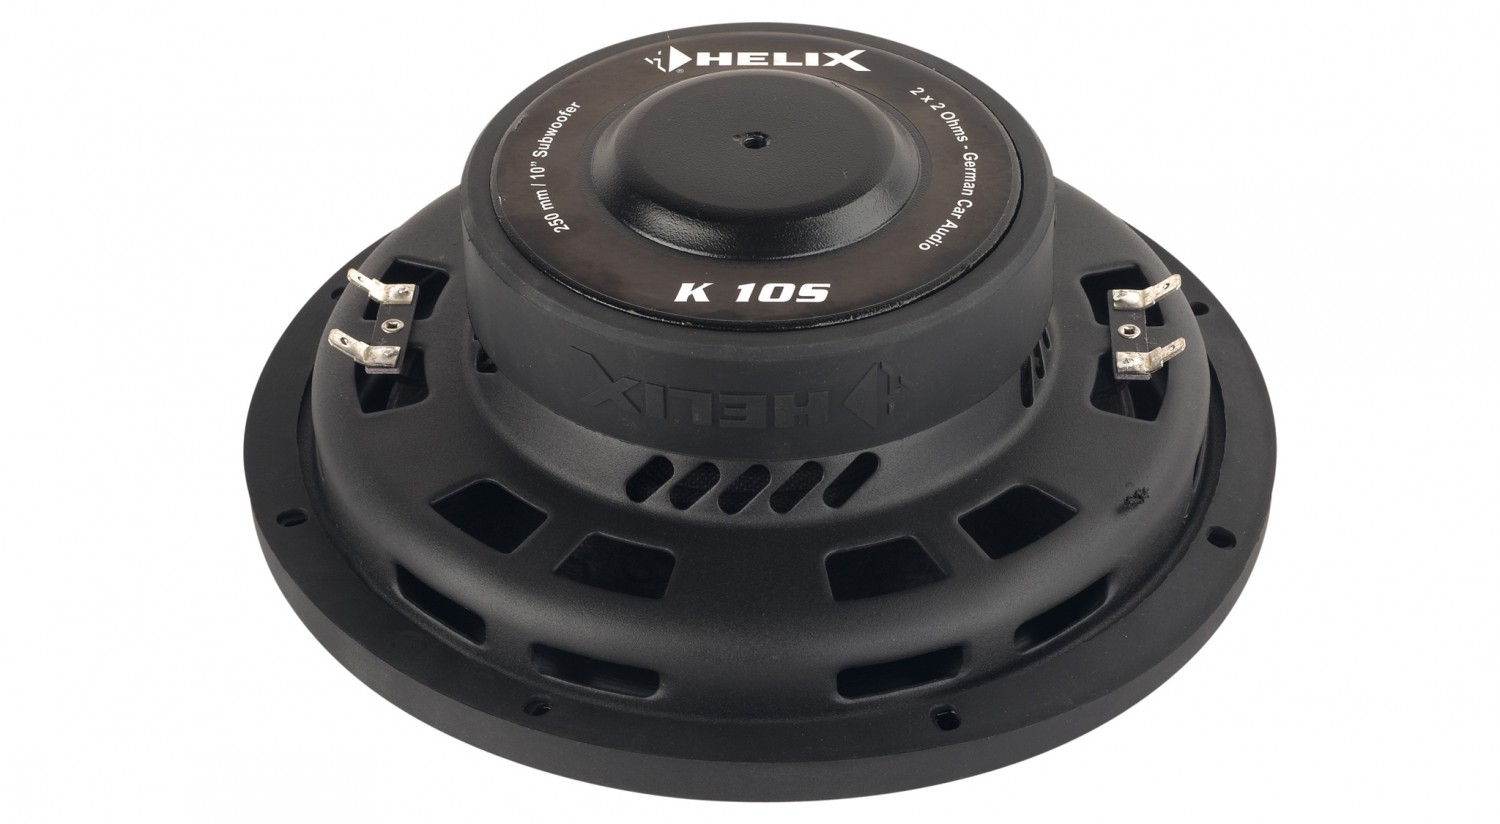 In-Car Subwoofer Chassis Helix K 10S im Test, Bild 4